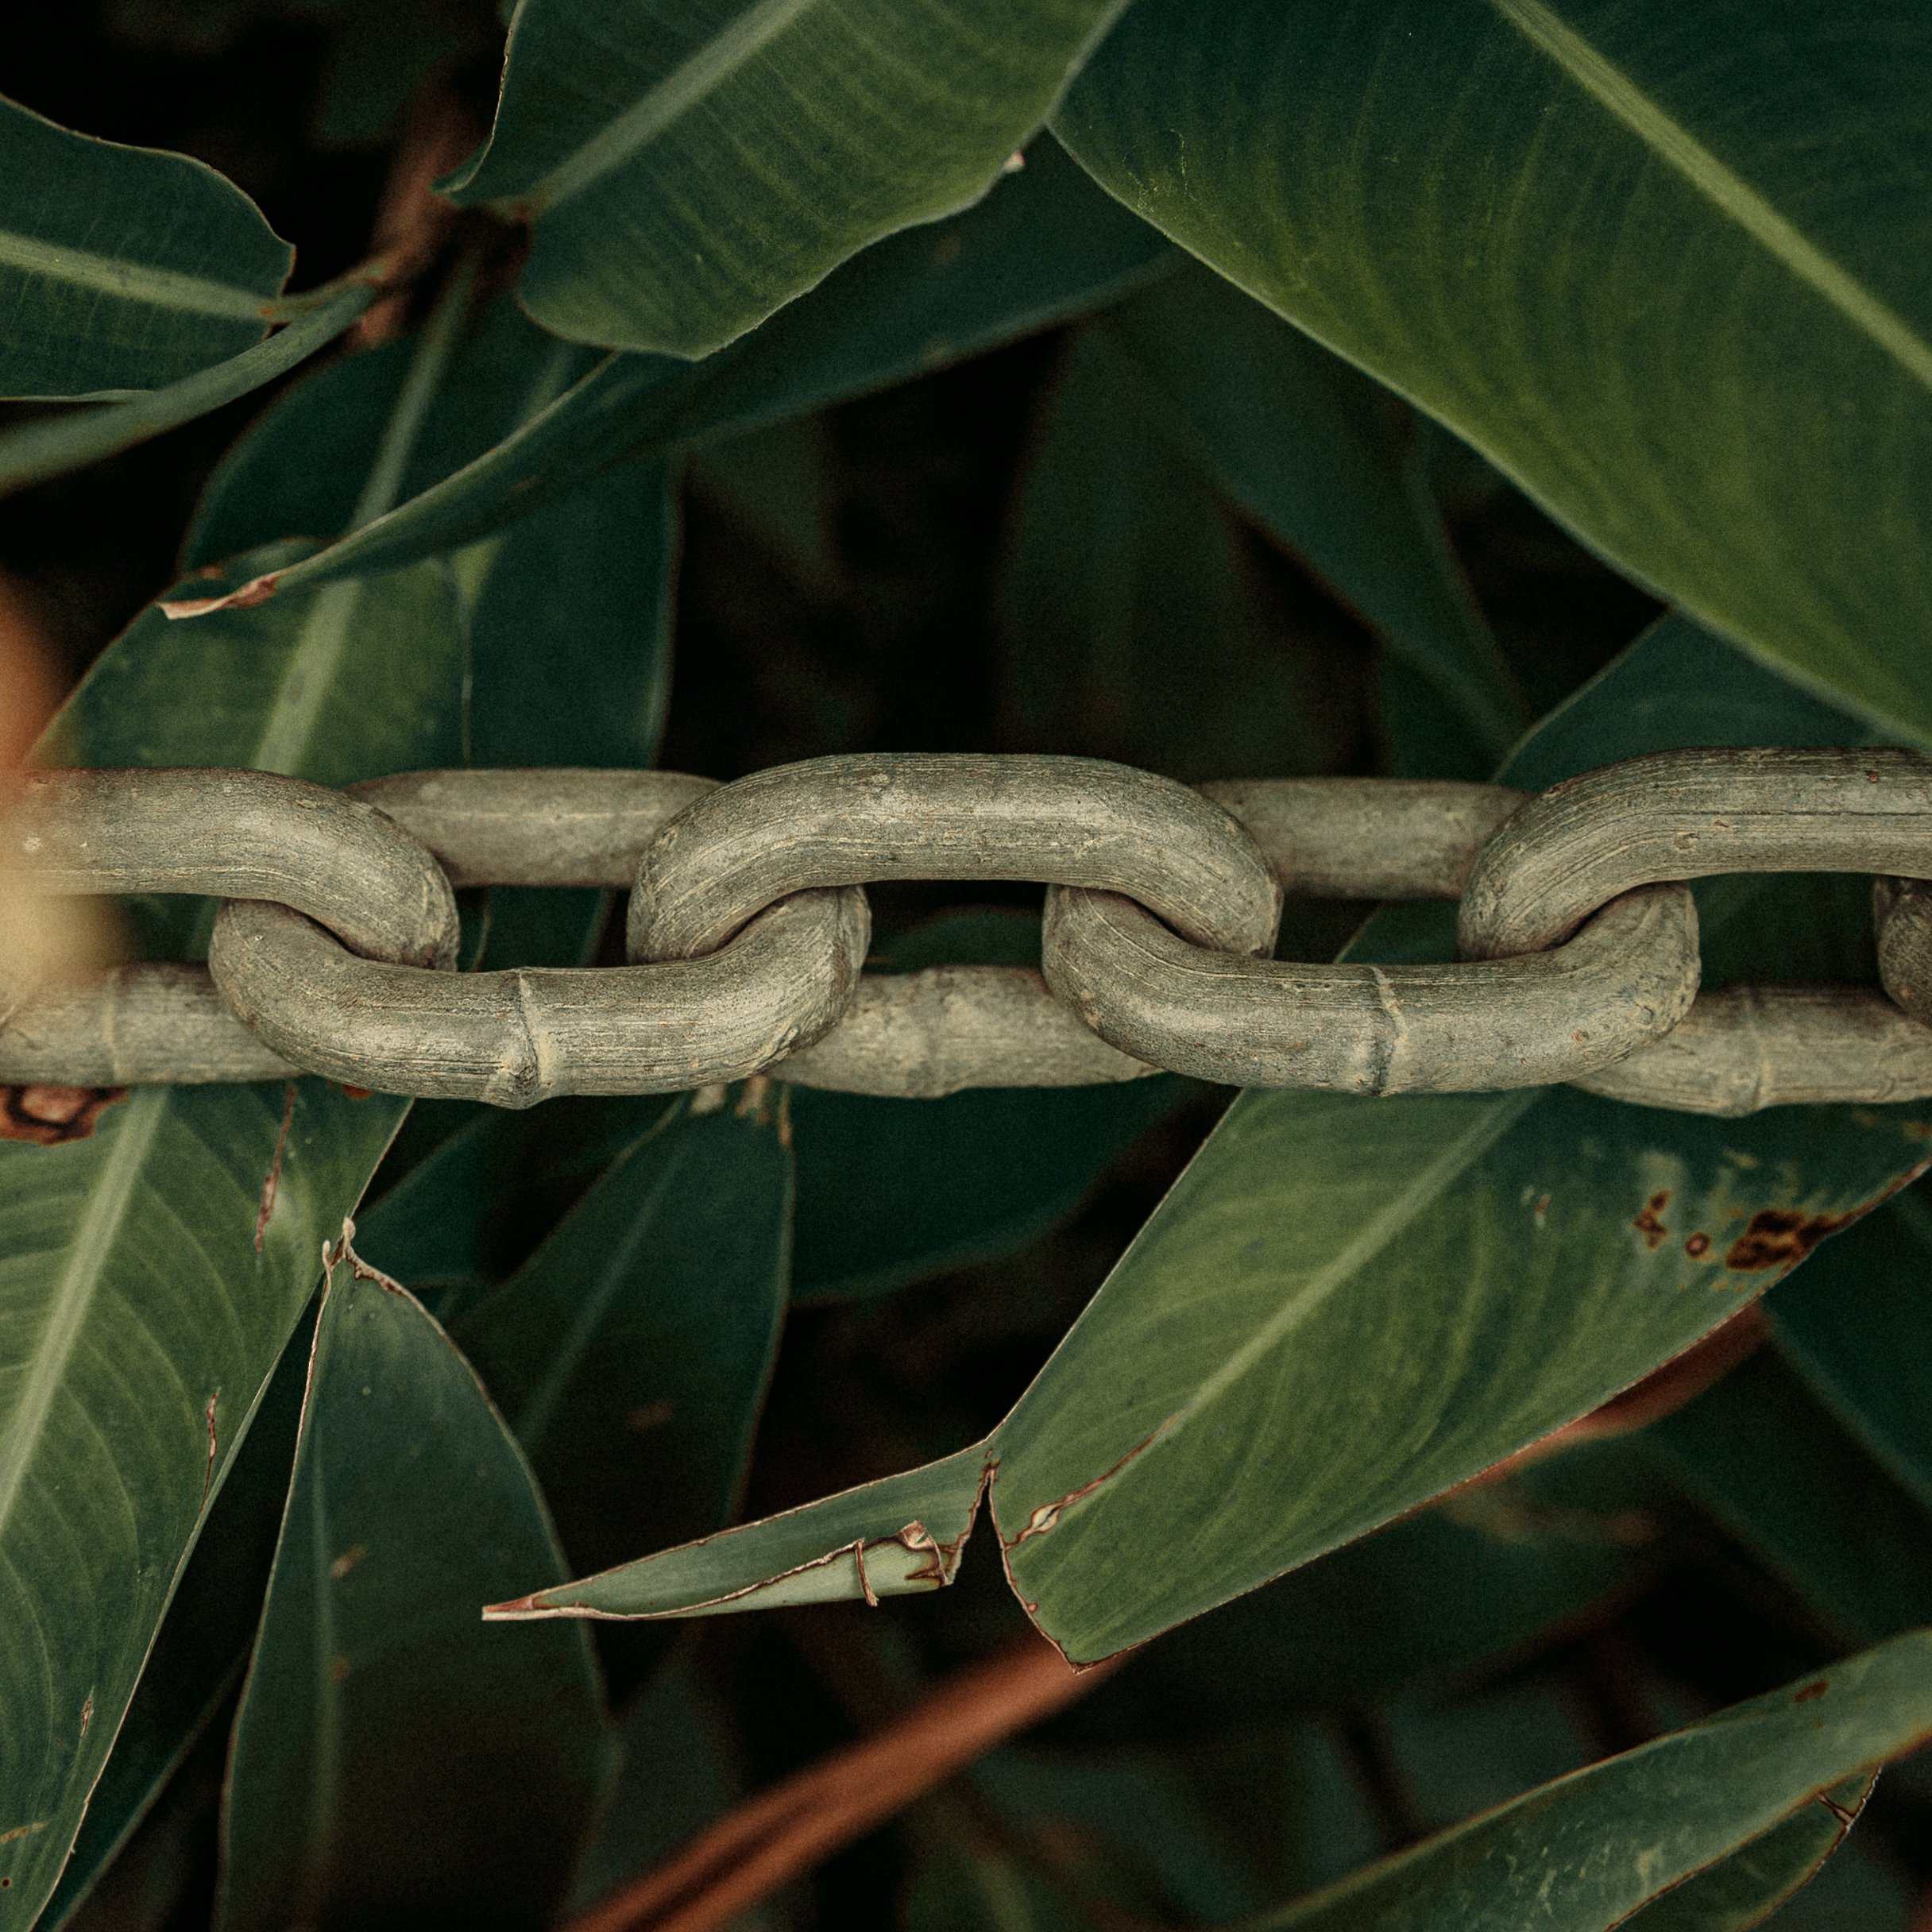 A chain link is a reminder that unity is strength. Also, in Jamaica we call a friend a linky or links. This picture, to me, signifies a man made link in the natural world.